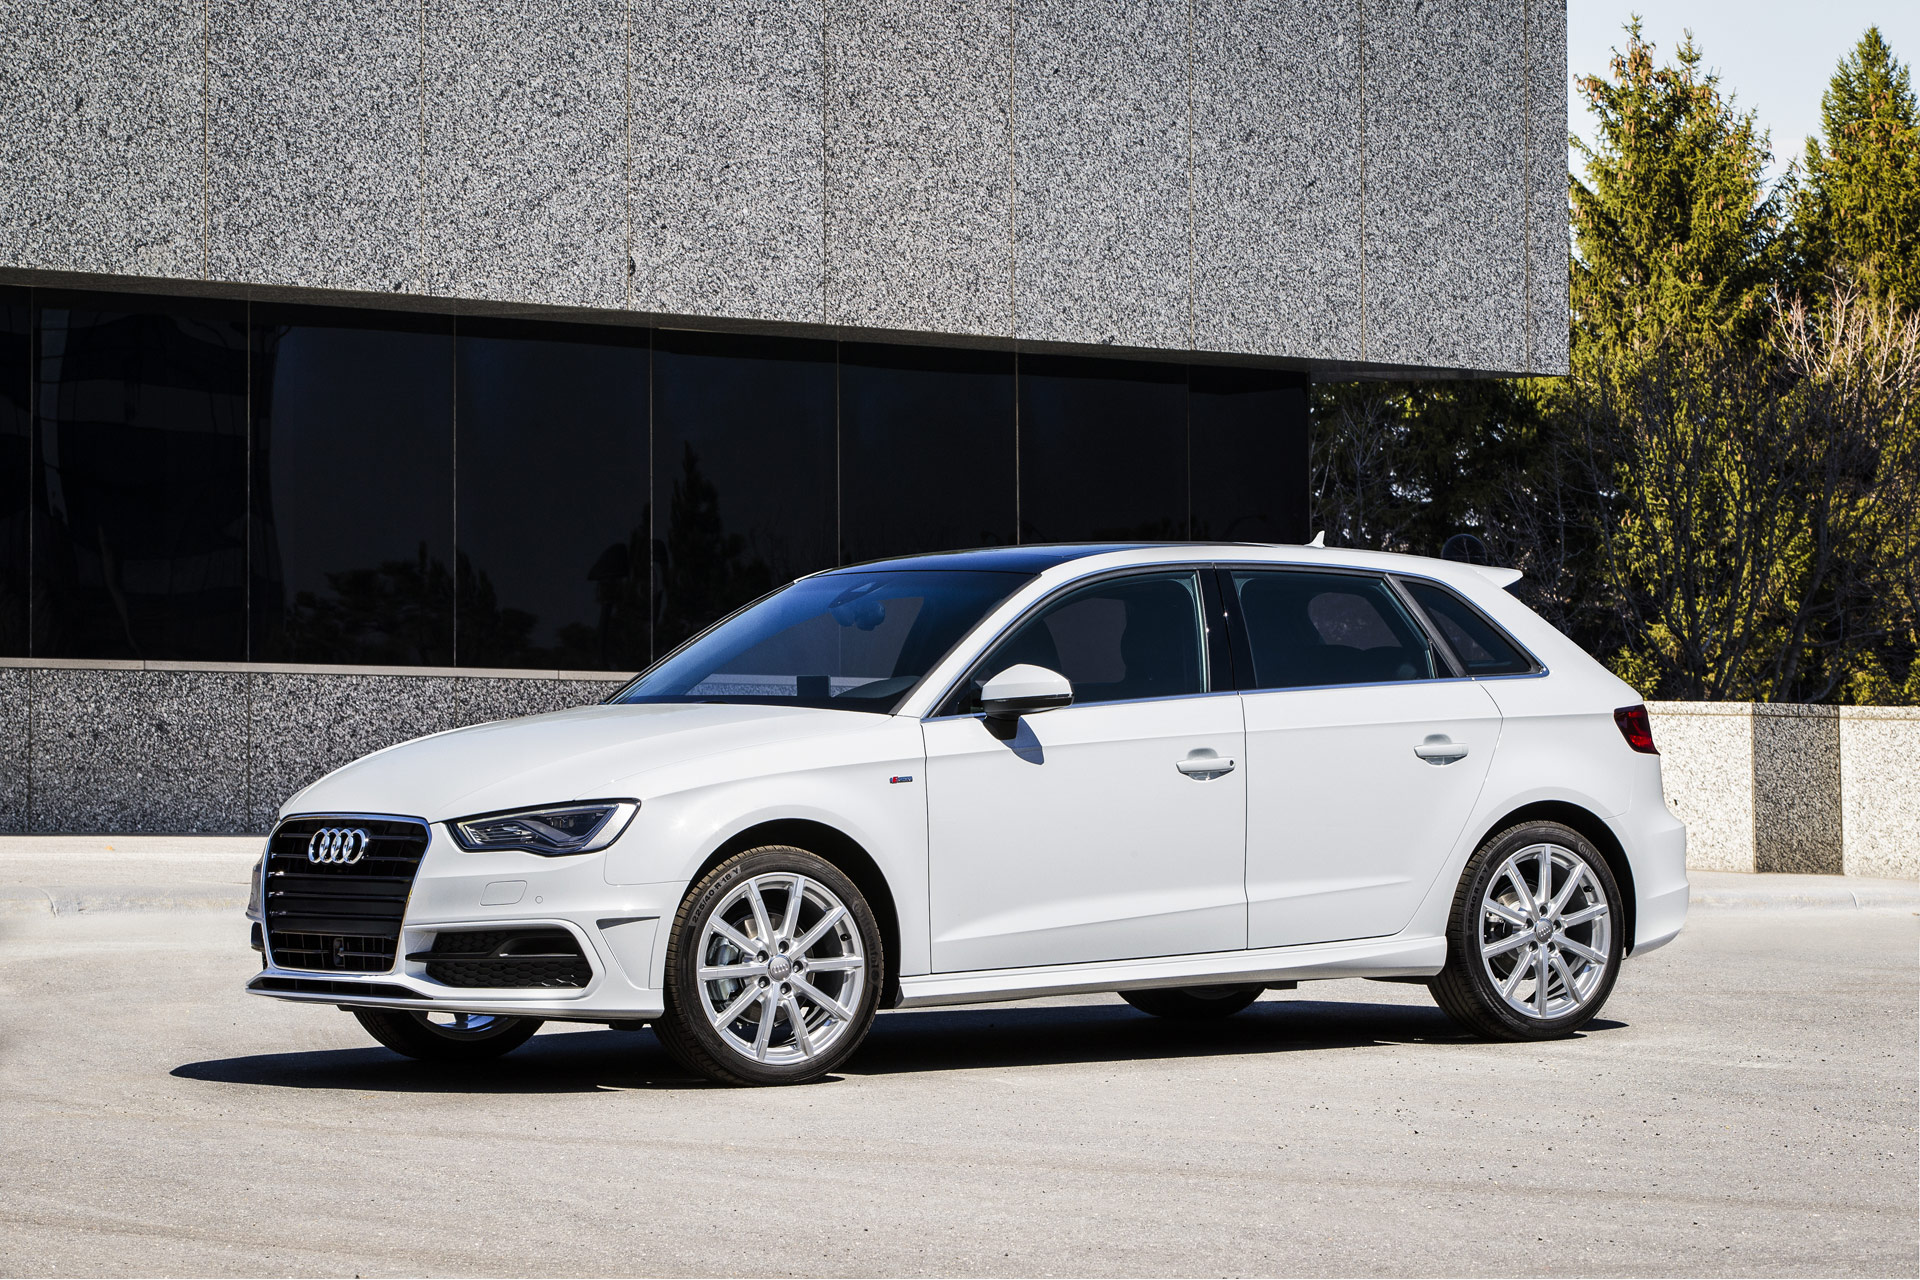 2015 Audi A3 Tdi Sportback News And Information